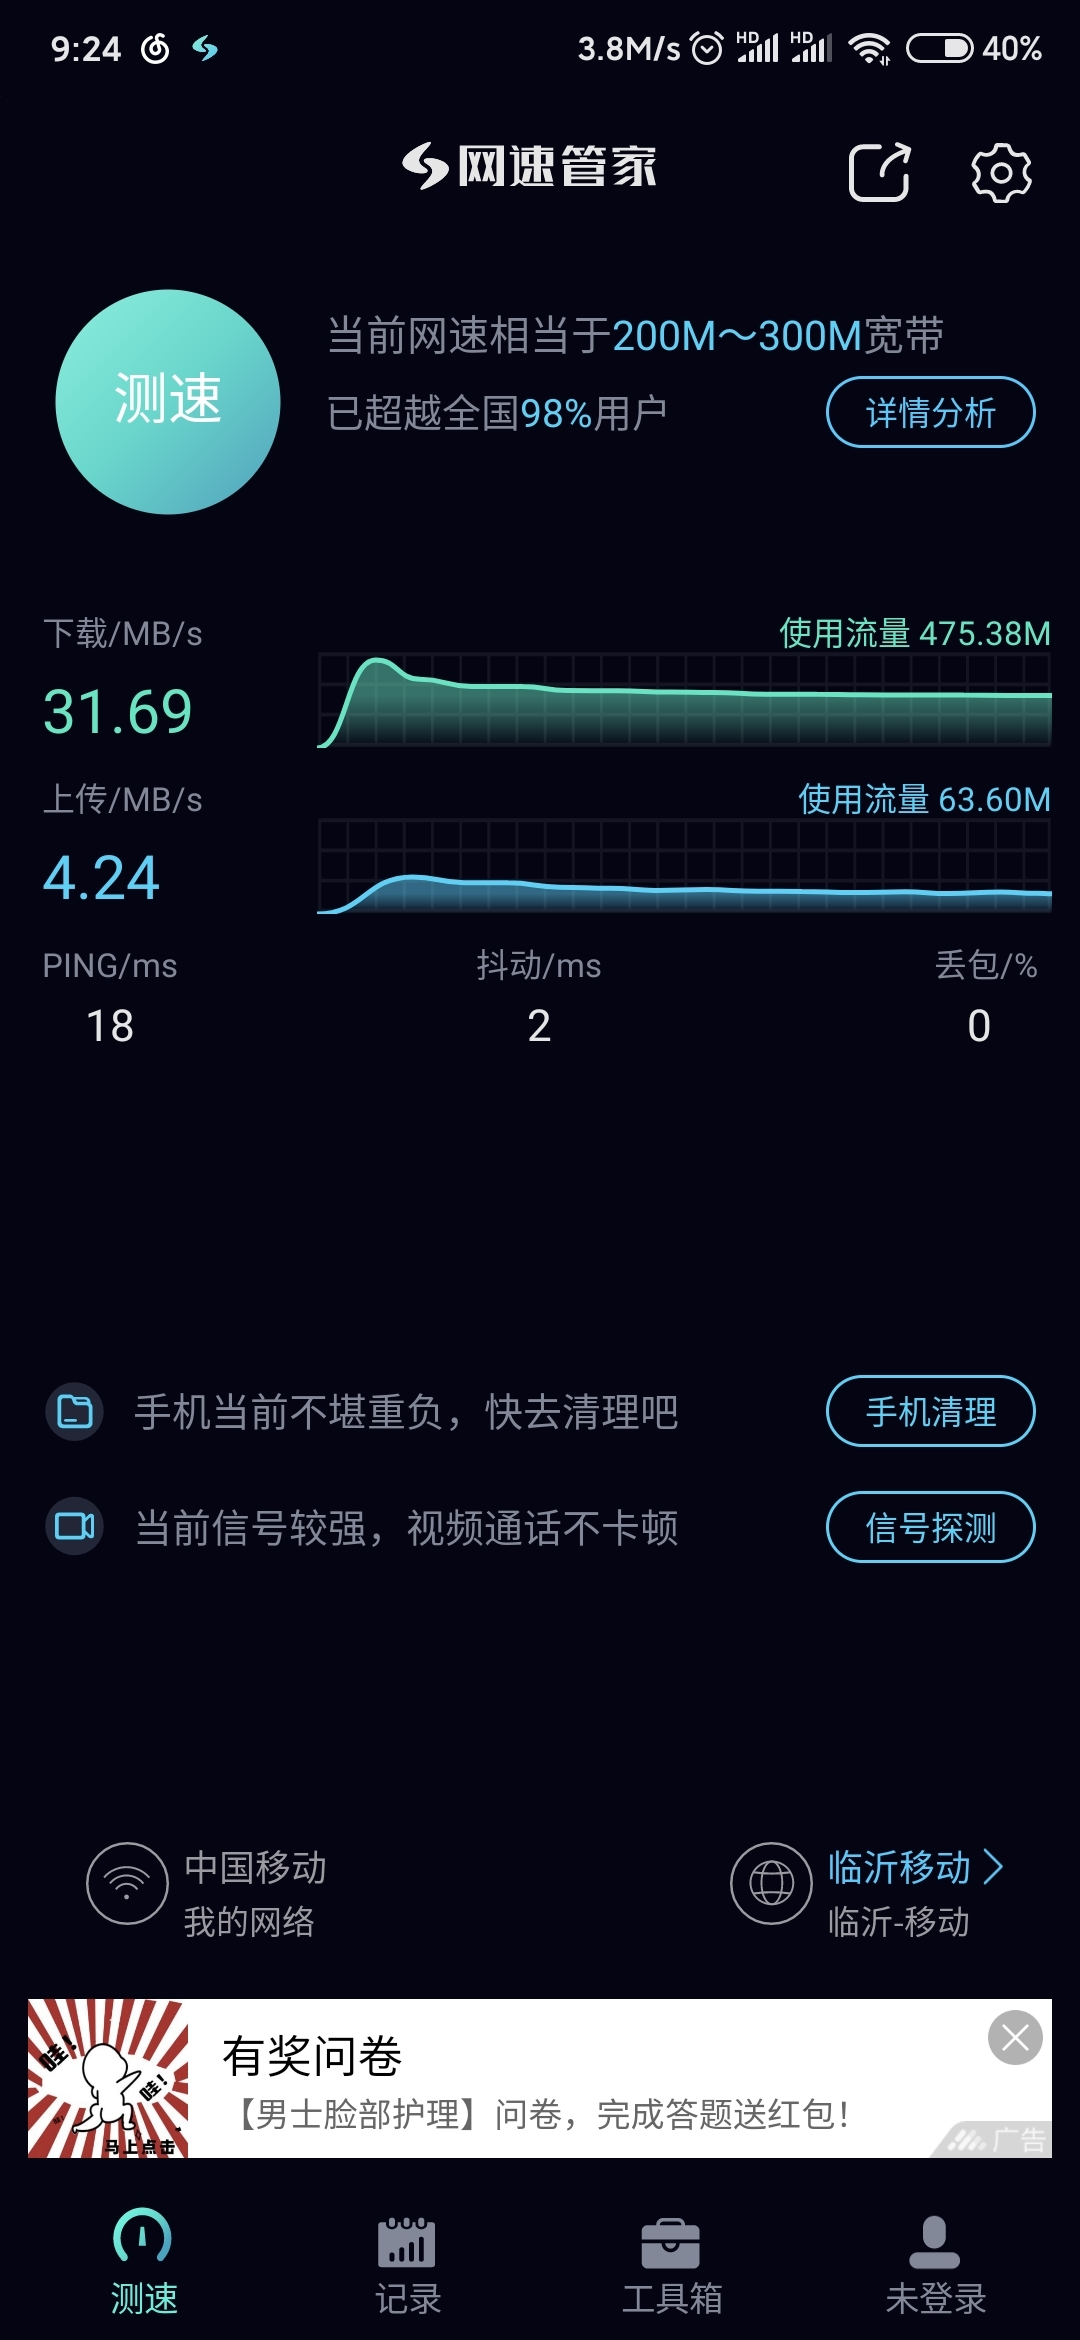 Screenshot_2020-05-20-09-24-50-226_cn.lezhi.speedtest.jpg